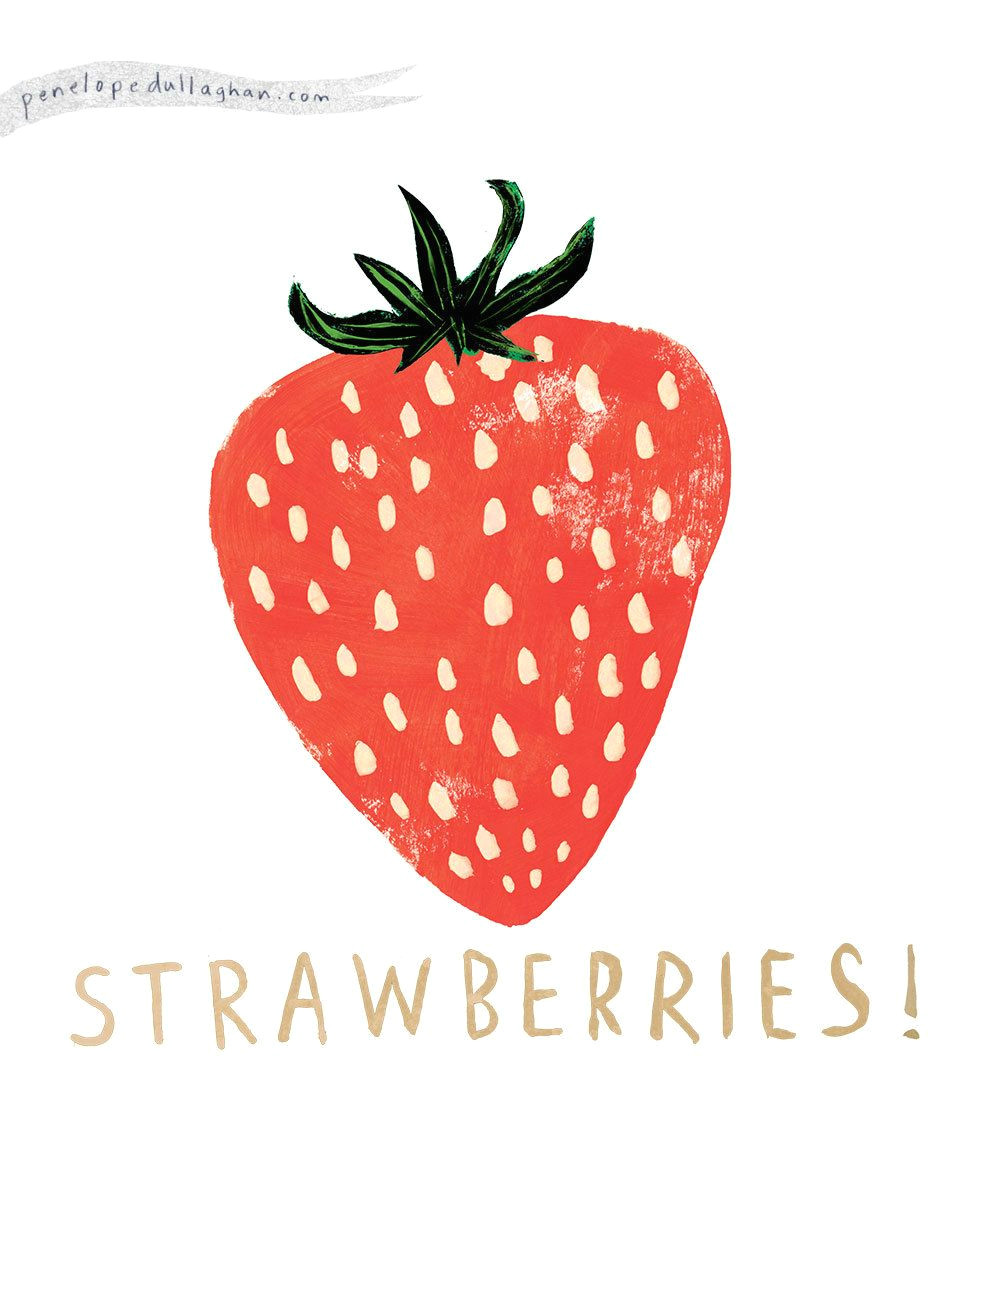 strawberries design illustration simple food drawing design type lettering texture